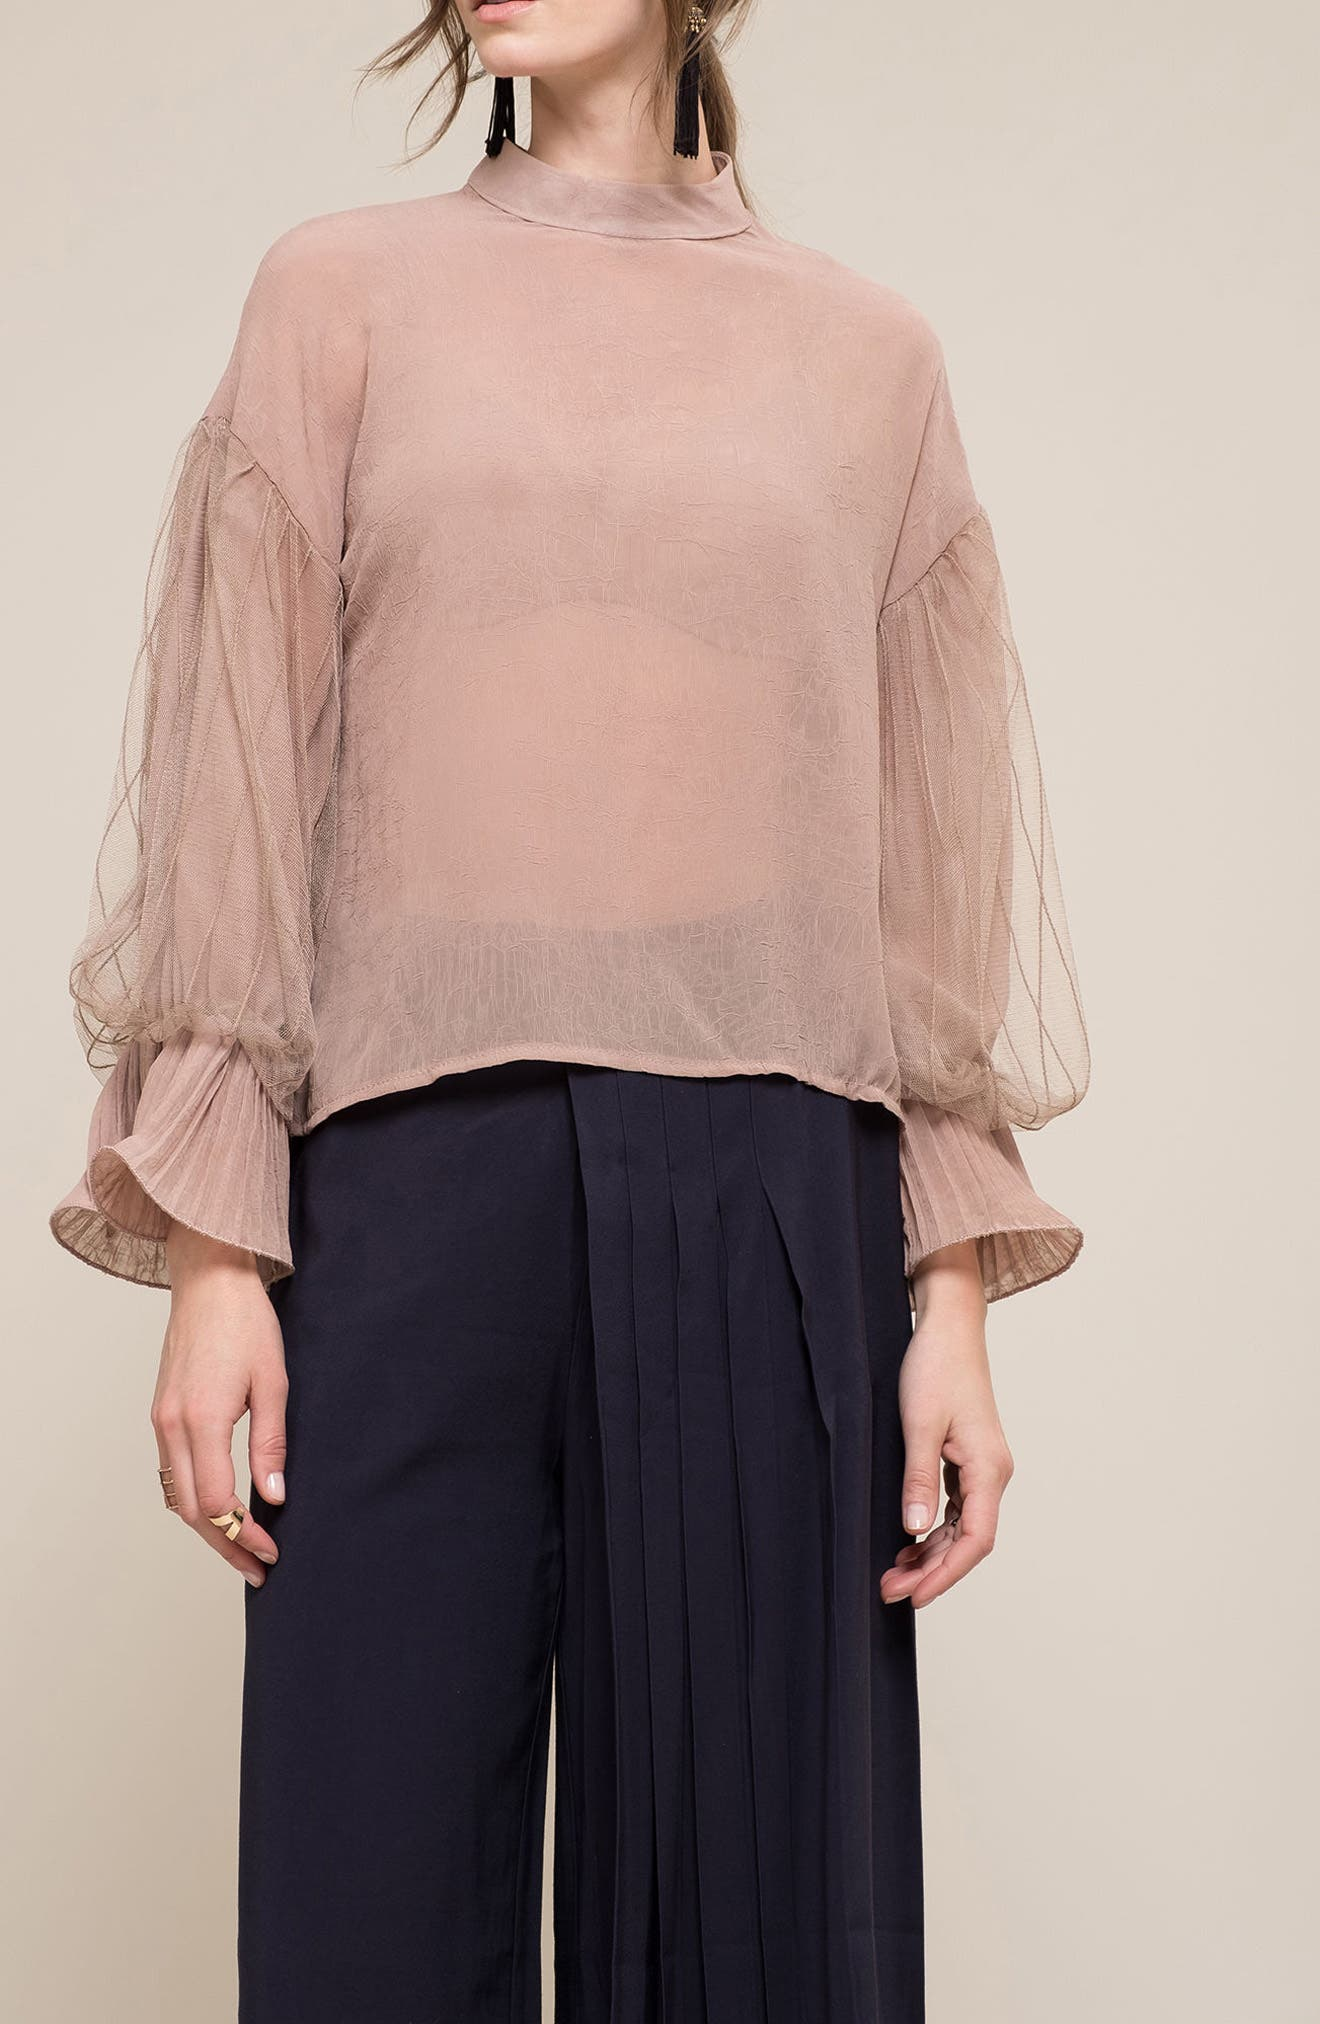 Tulle Puff Sleeve Top,                             Alternate thumbnail 7, color,                             Dusty Rose